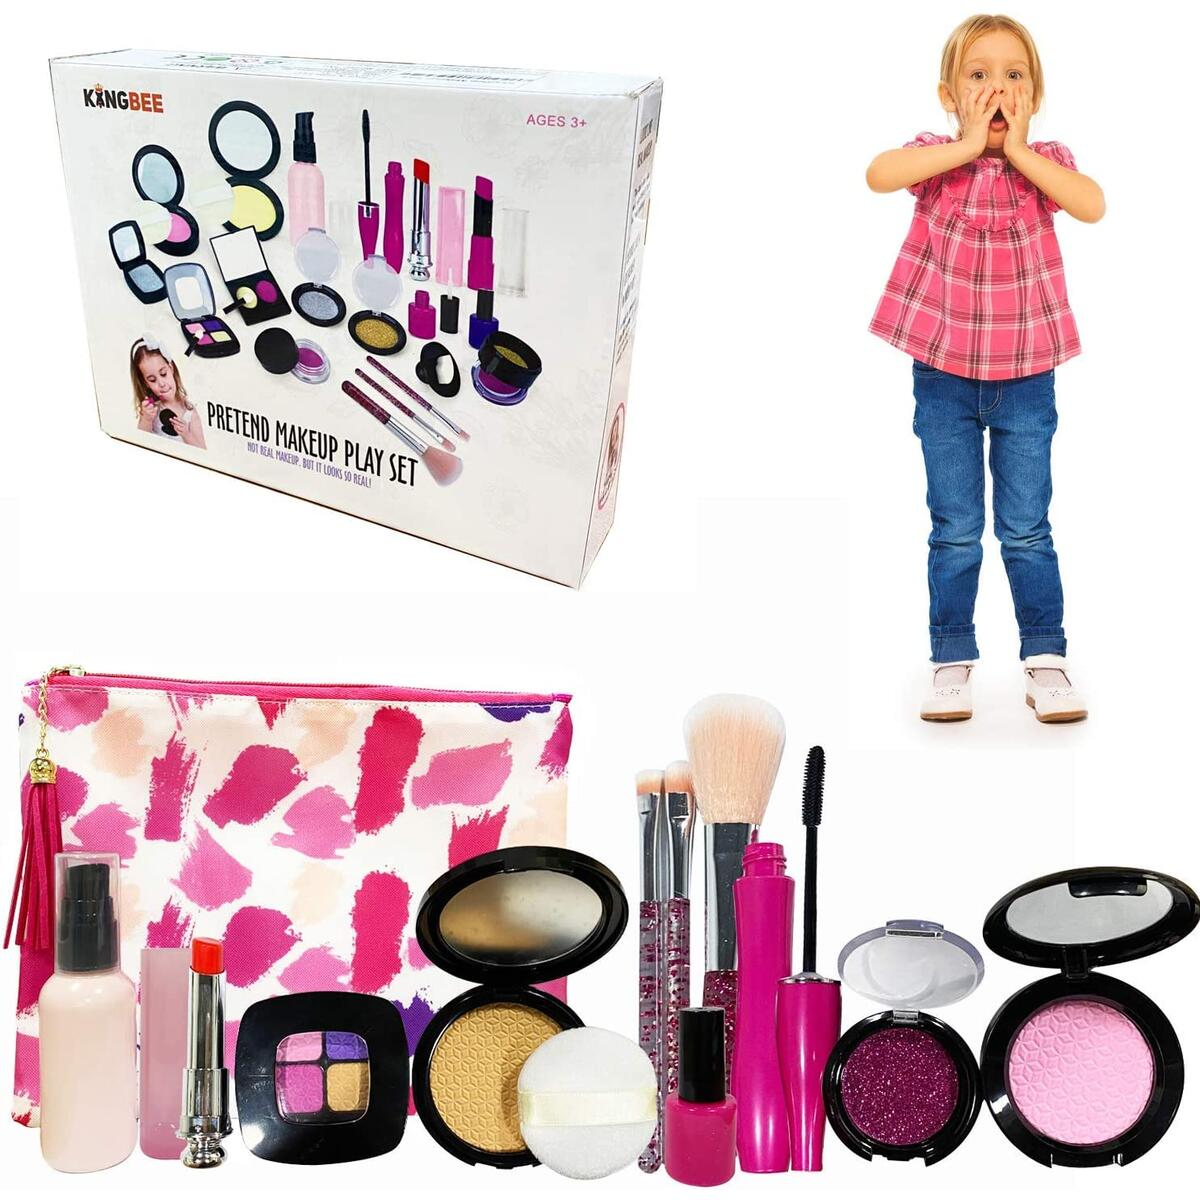 Makeup Toys for Girls